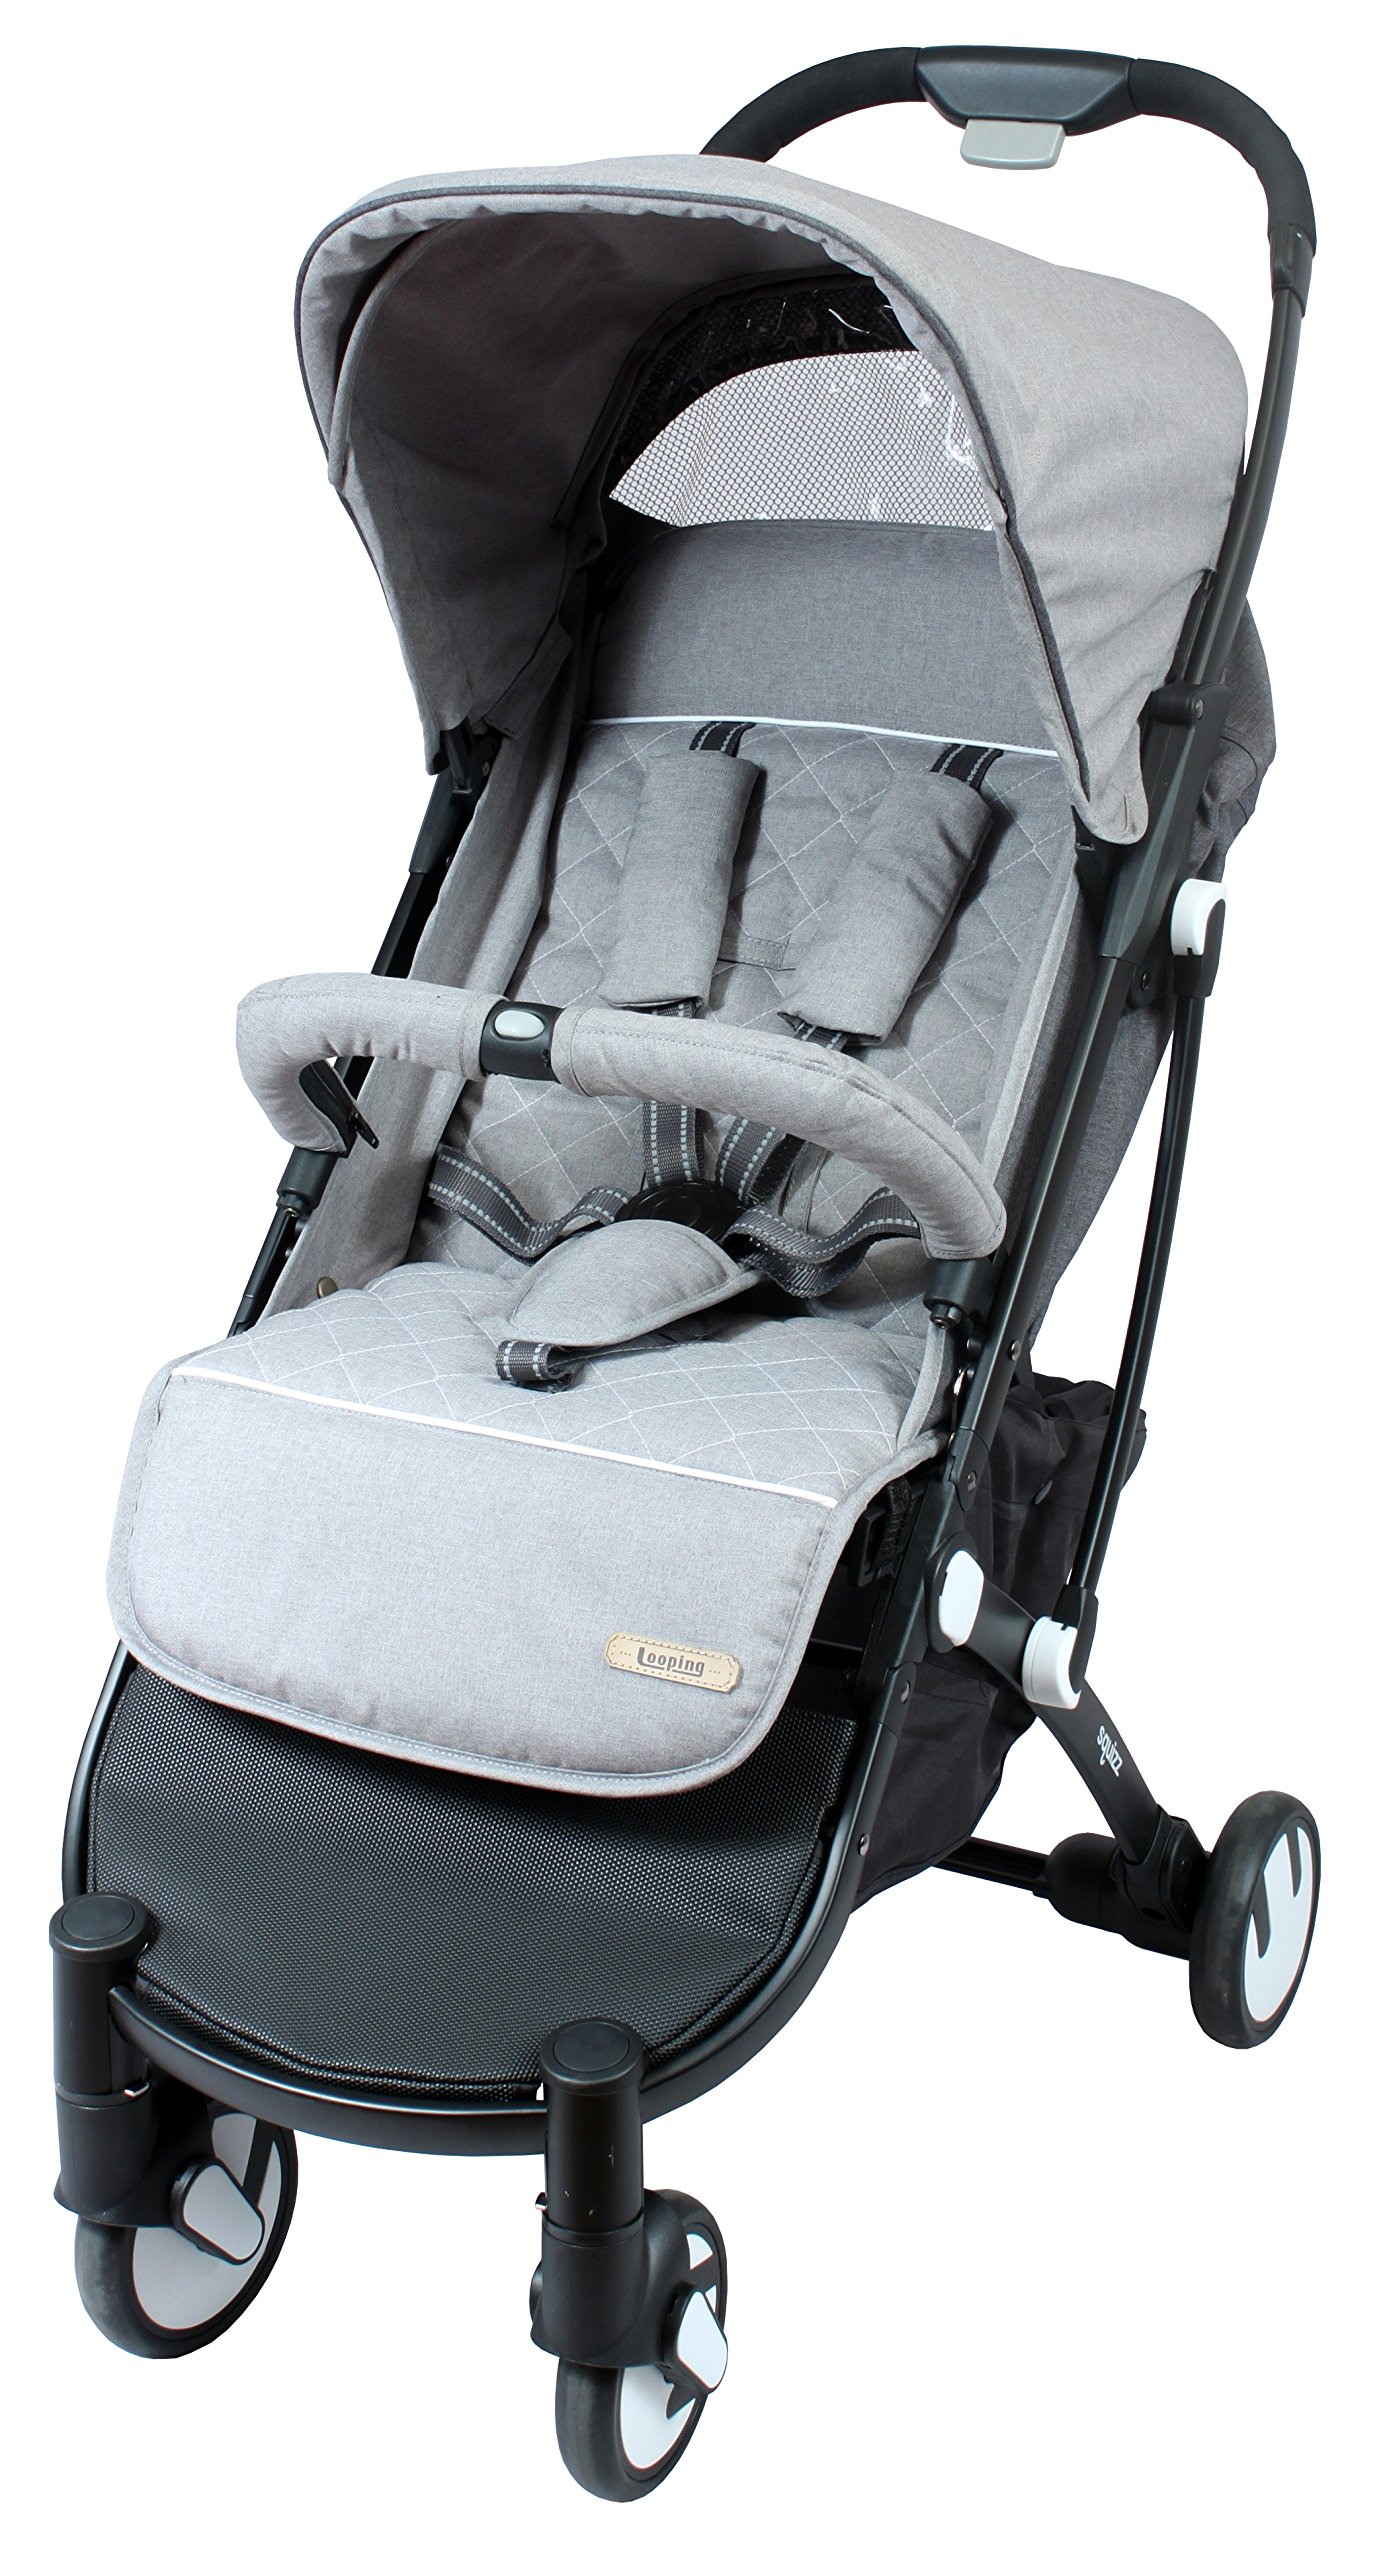 LOOPING Poussette compacte Squizz 2 Z15 - Gris chiné Looping Very compact babies's pushchair from birth up to 15kg. Smart pull-along handle that enables you to pull the pushchair. Folds up and unfolds with one hand. Large canopy to better protect your baby- Removable and opening bumper bar to keep your baby in place. 4